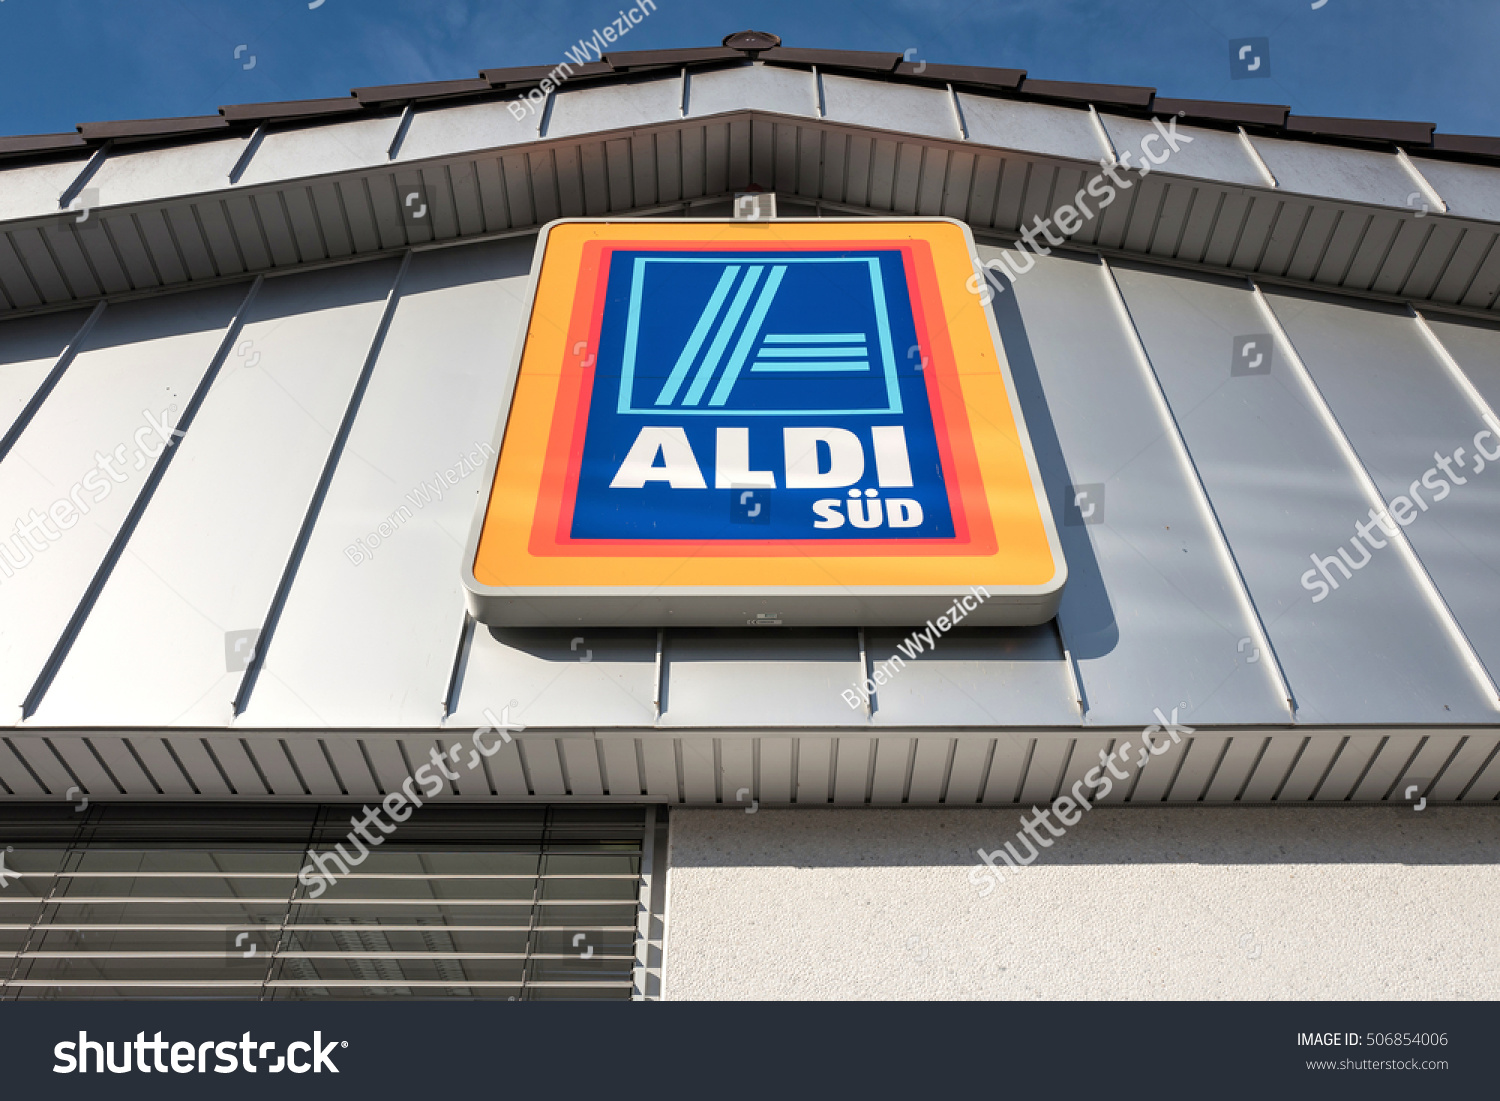 Engelskirchen germany october 30 2016 aldi stock photo 506854006 engelskirchen germany october 30 2016 aldi sign south division at biocorpaavc